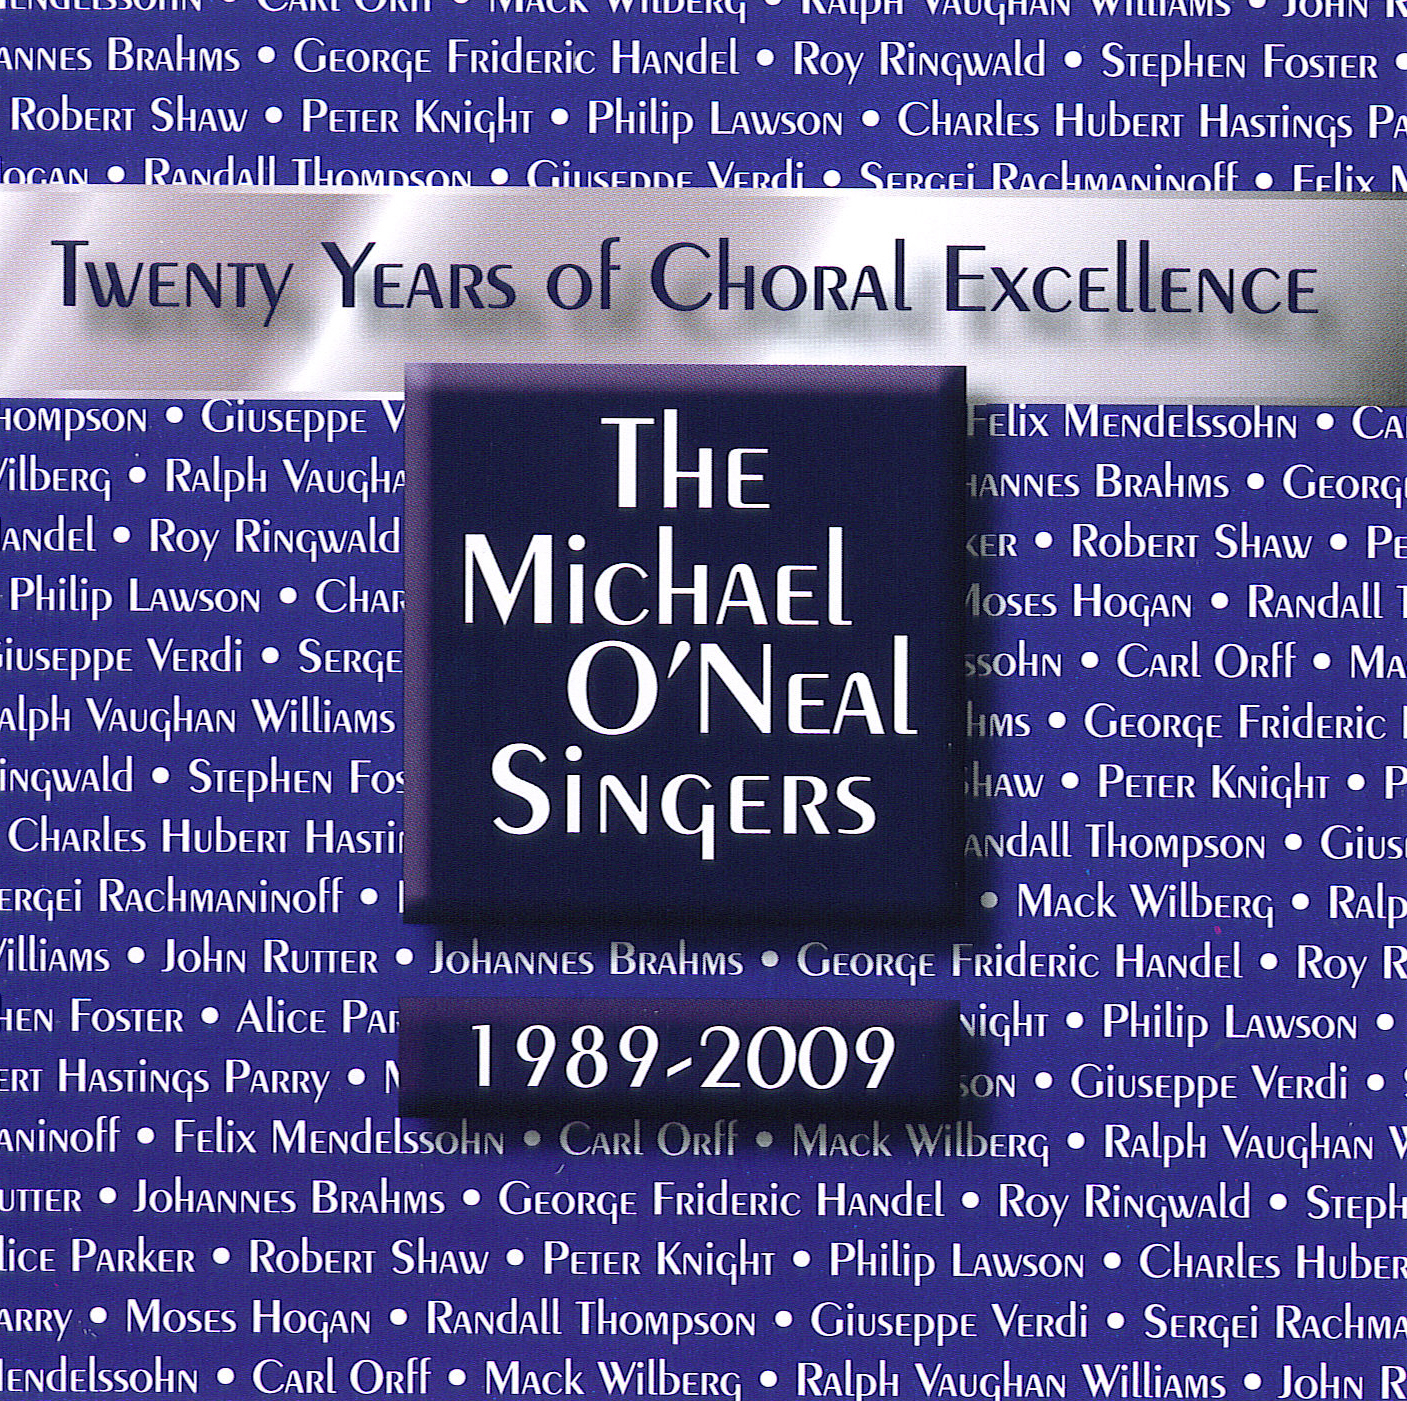 Twenty Years of Choral Excellence CD